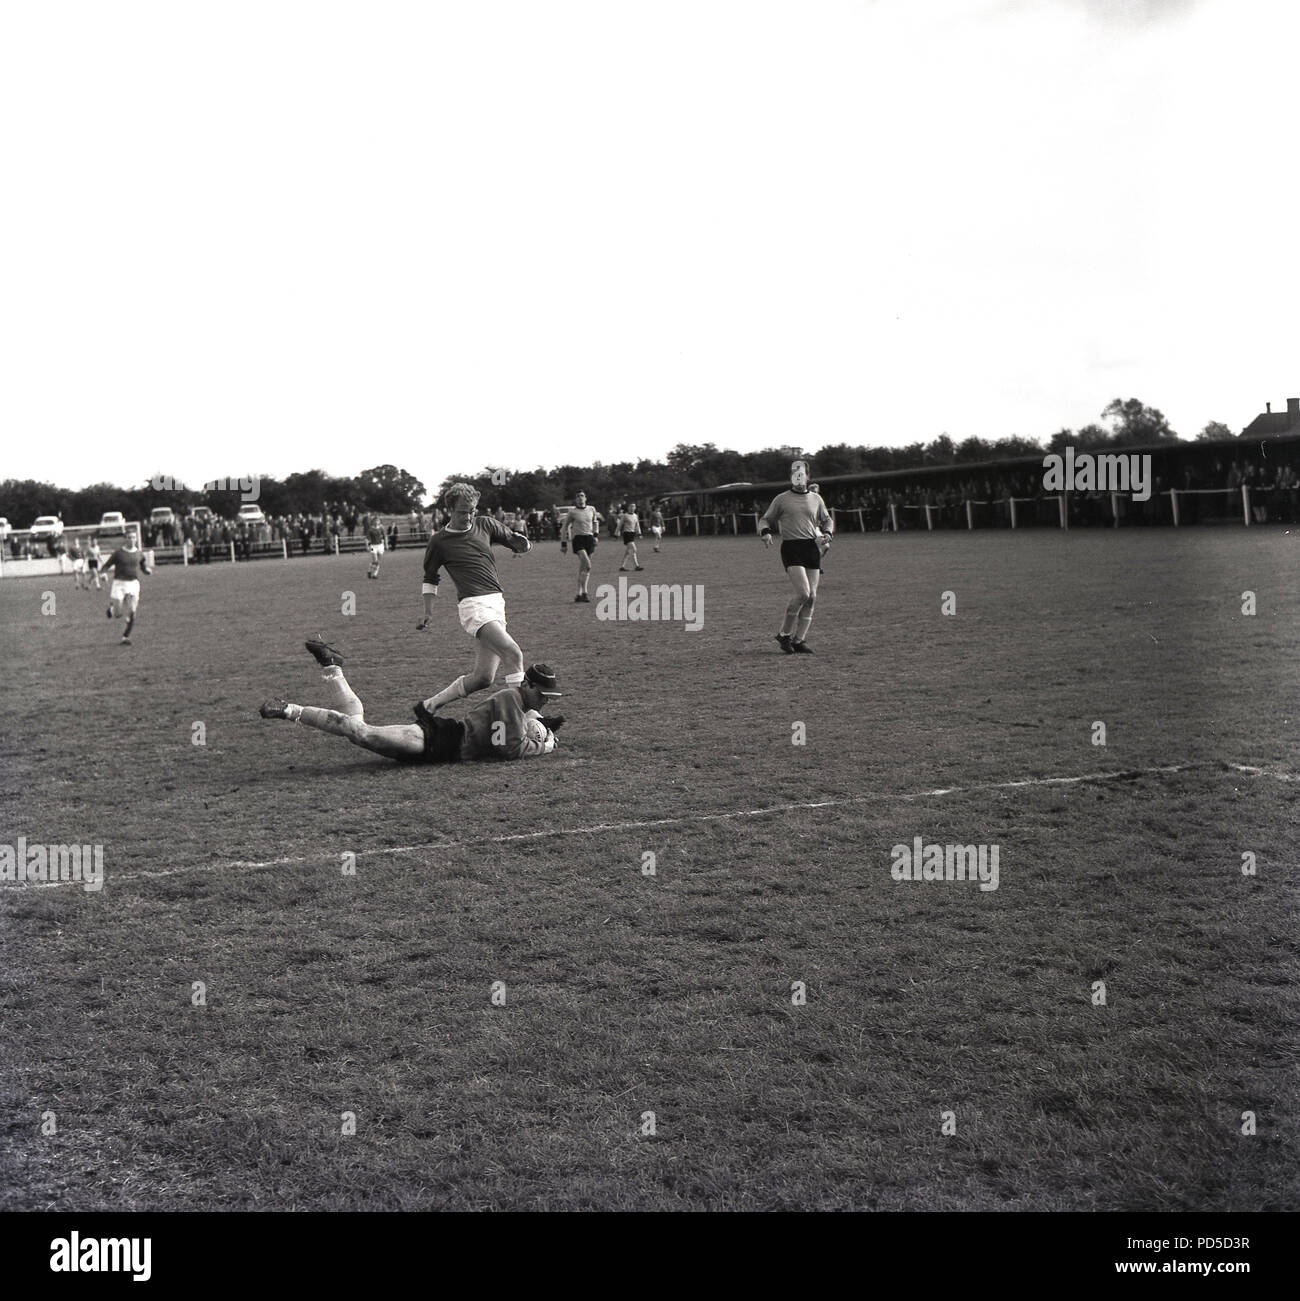 1960s semi-professional football match, goalkeeper wearing cap grans the ball at the feet of an oncoming striker, Aylesburry, Town FC, Aylesbury, Bucks, England, UK. - Stock Image